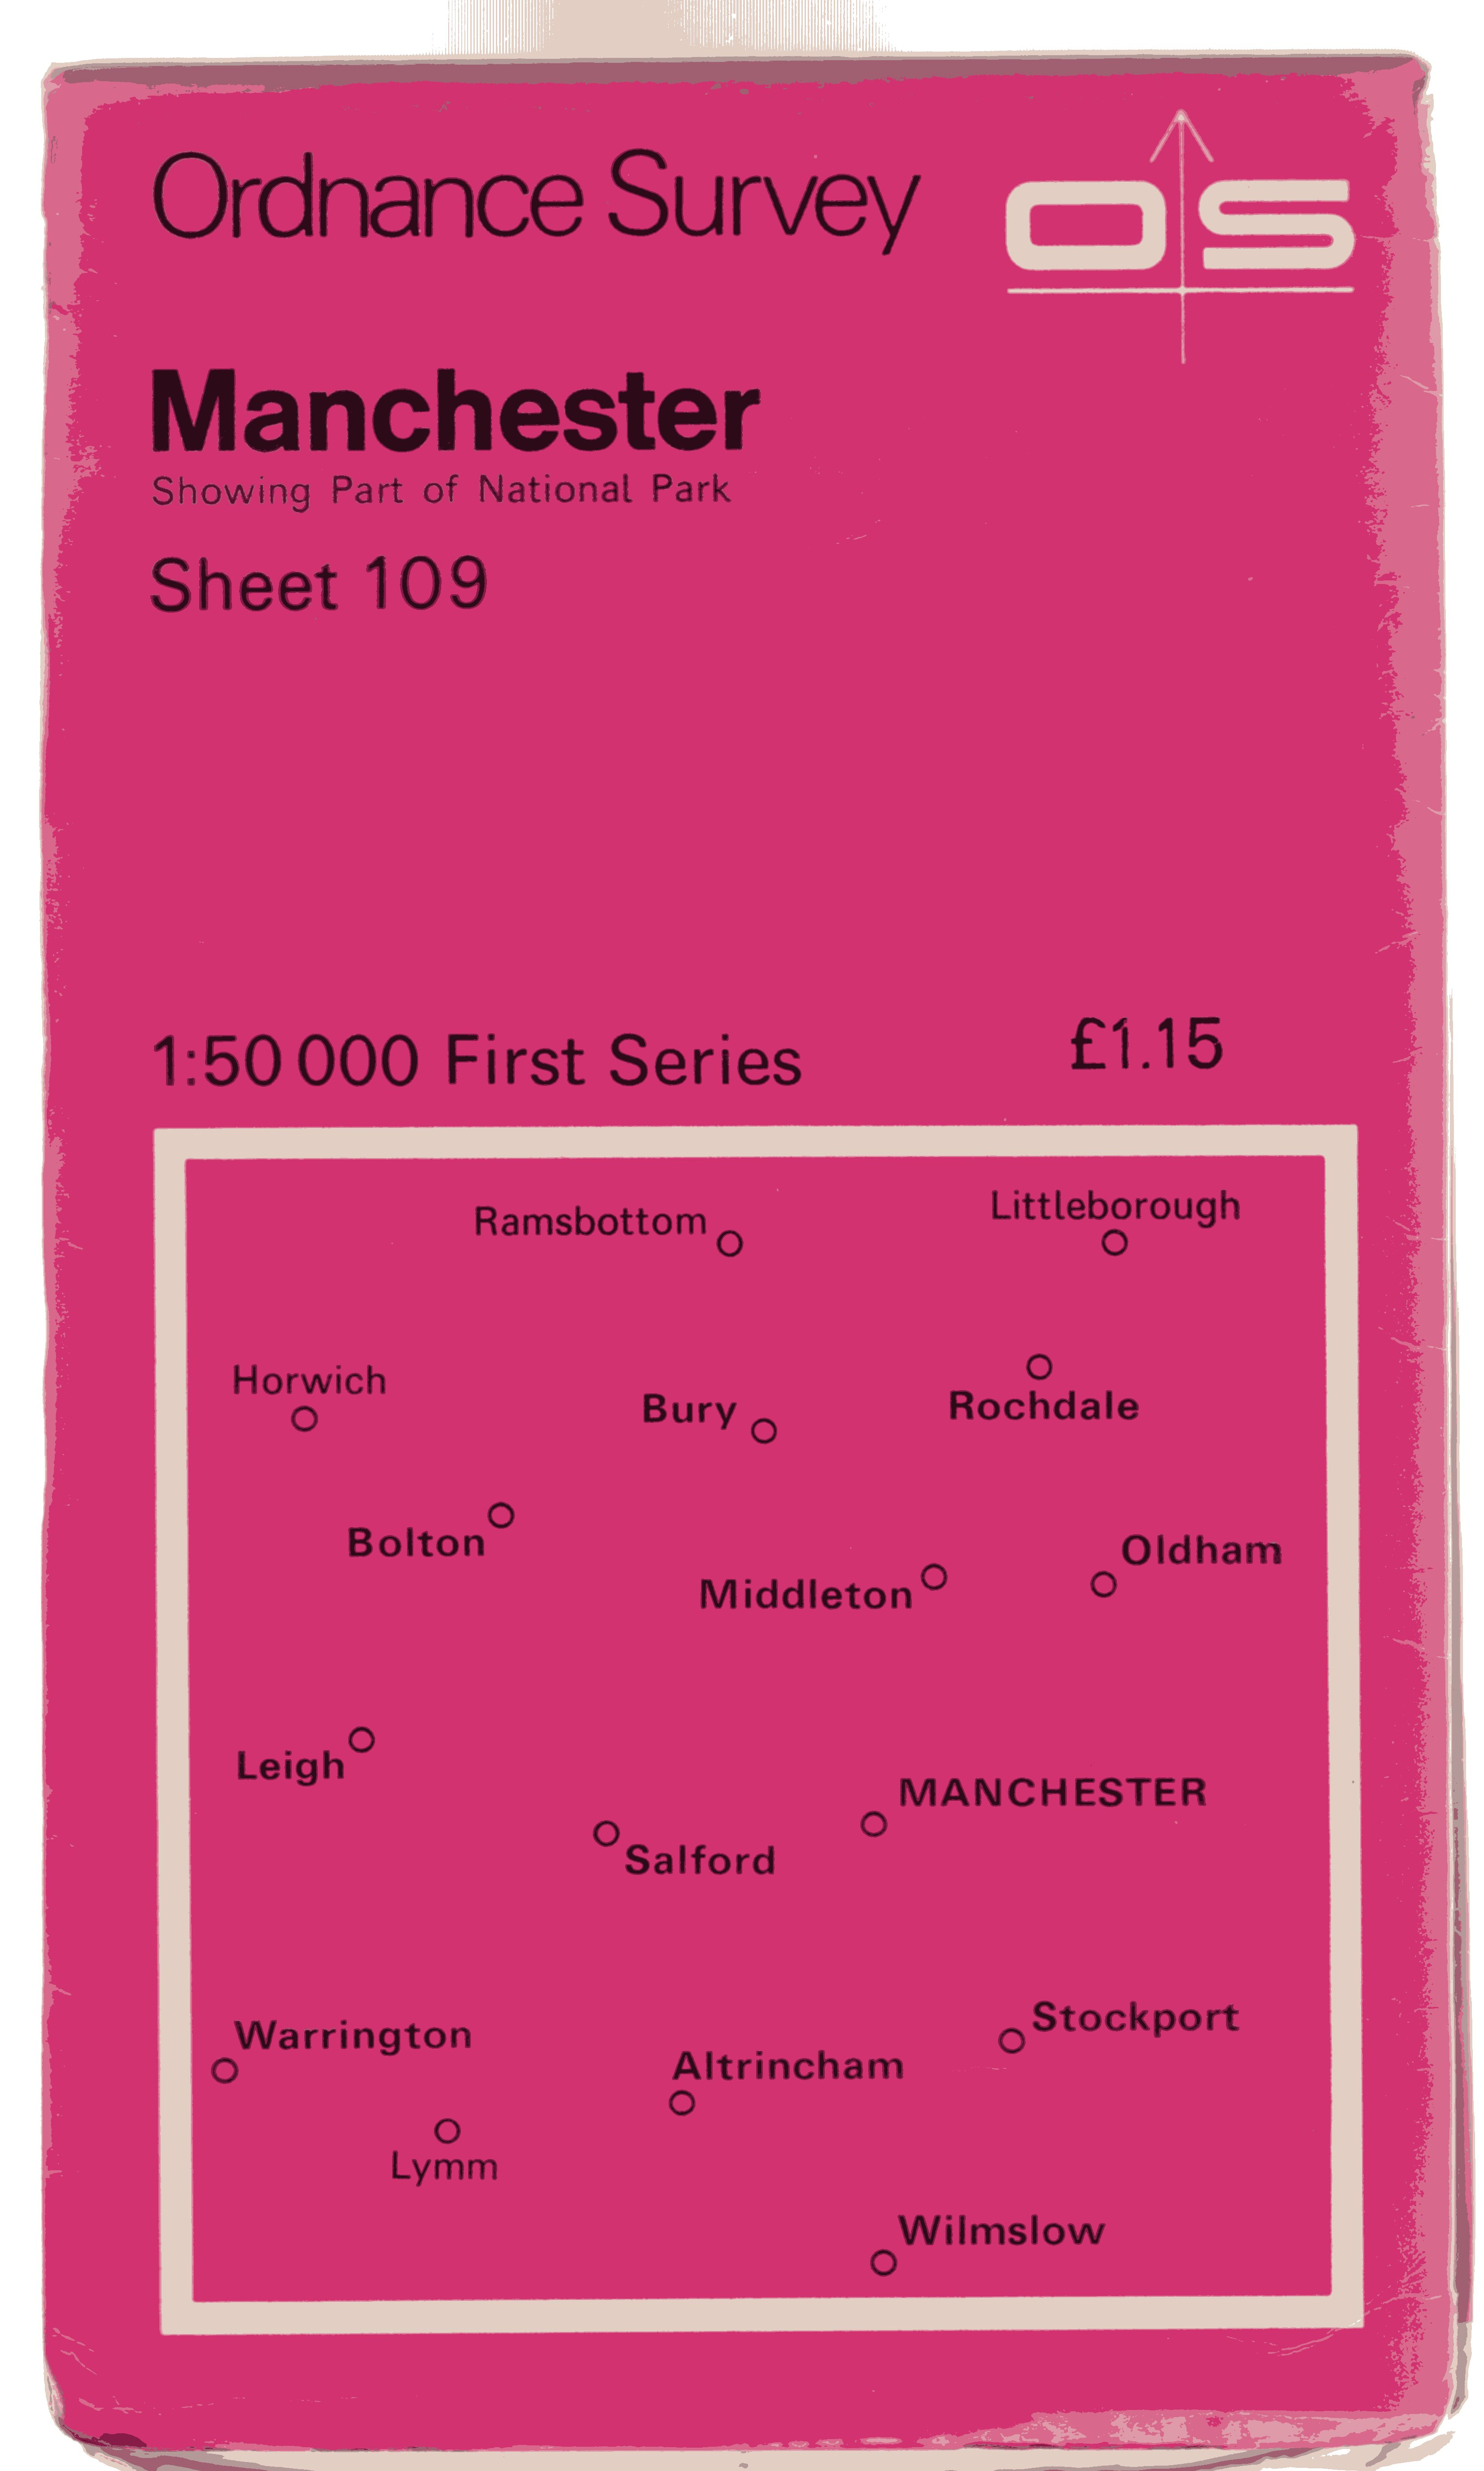 Image for Ordnance Survey Sheet 109 Manchester